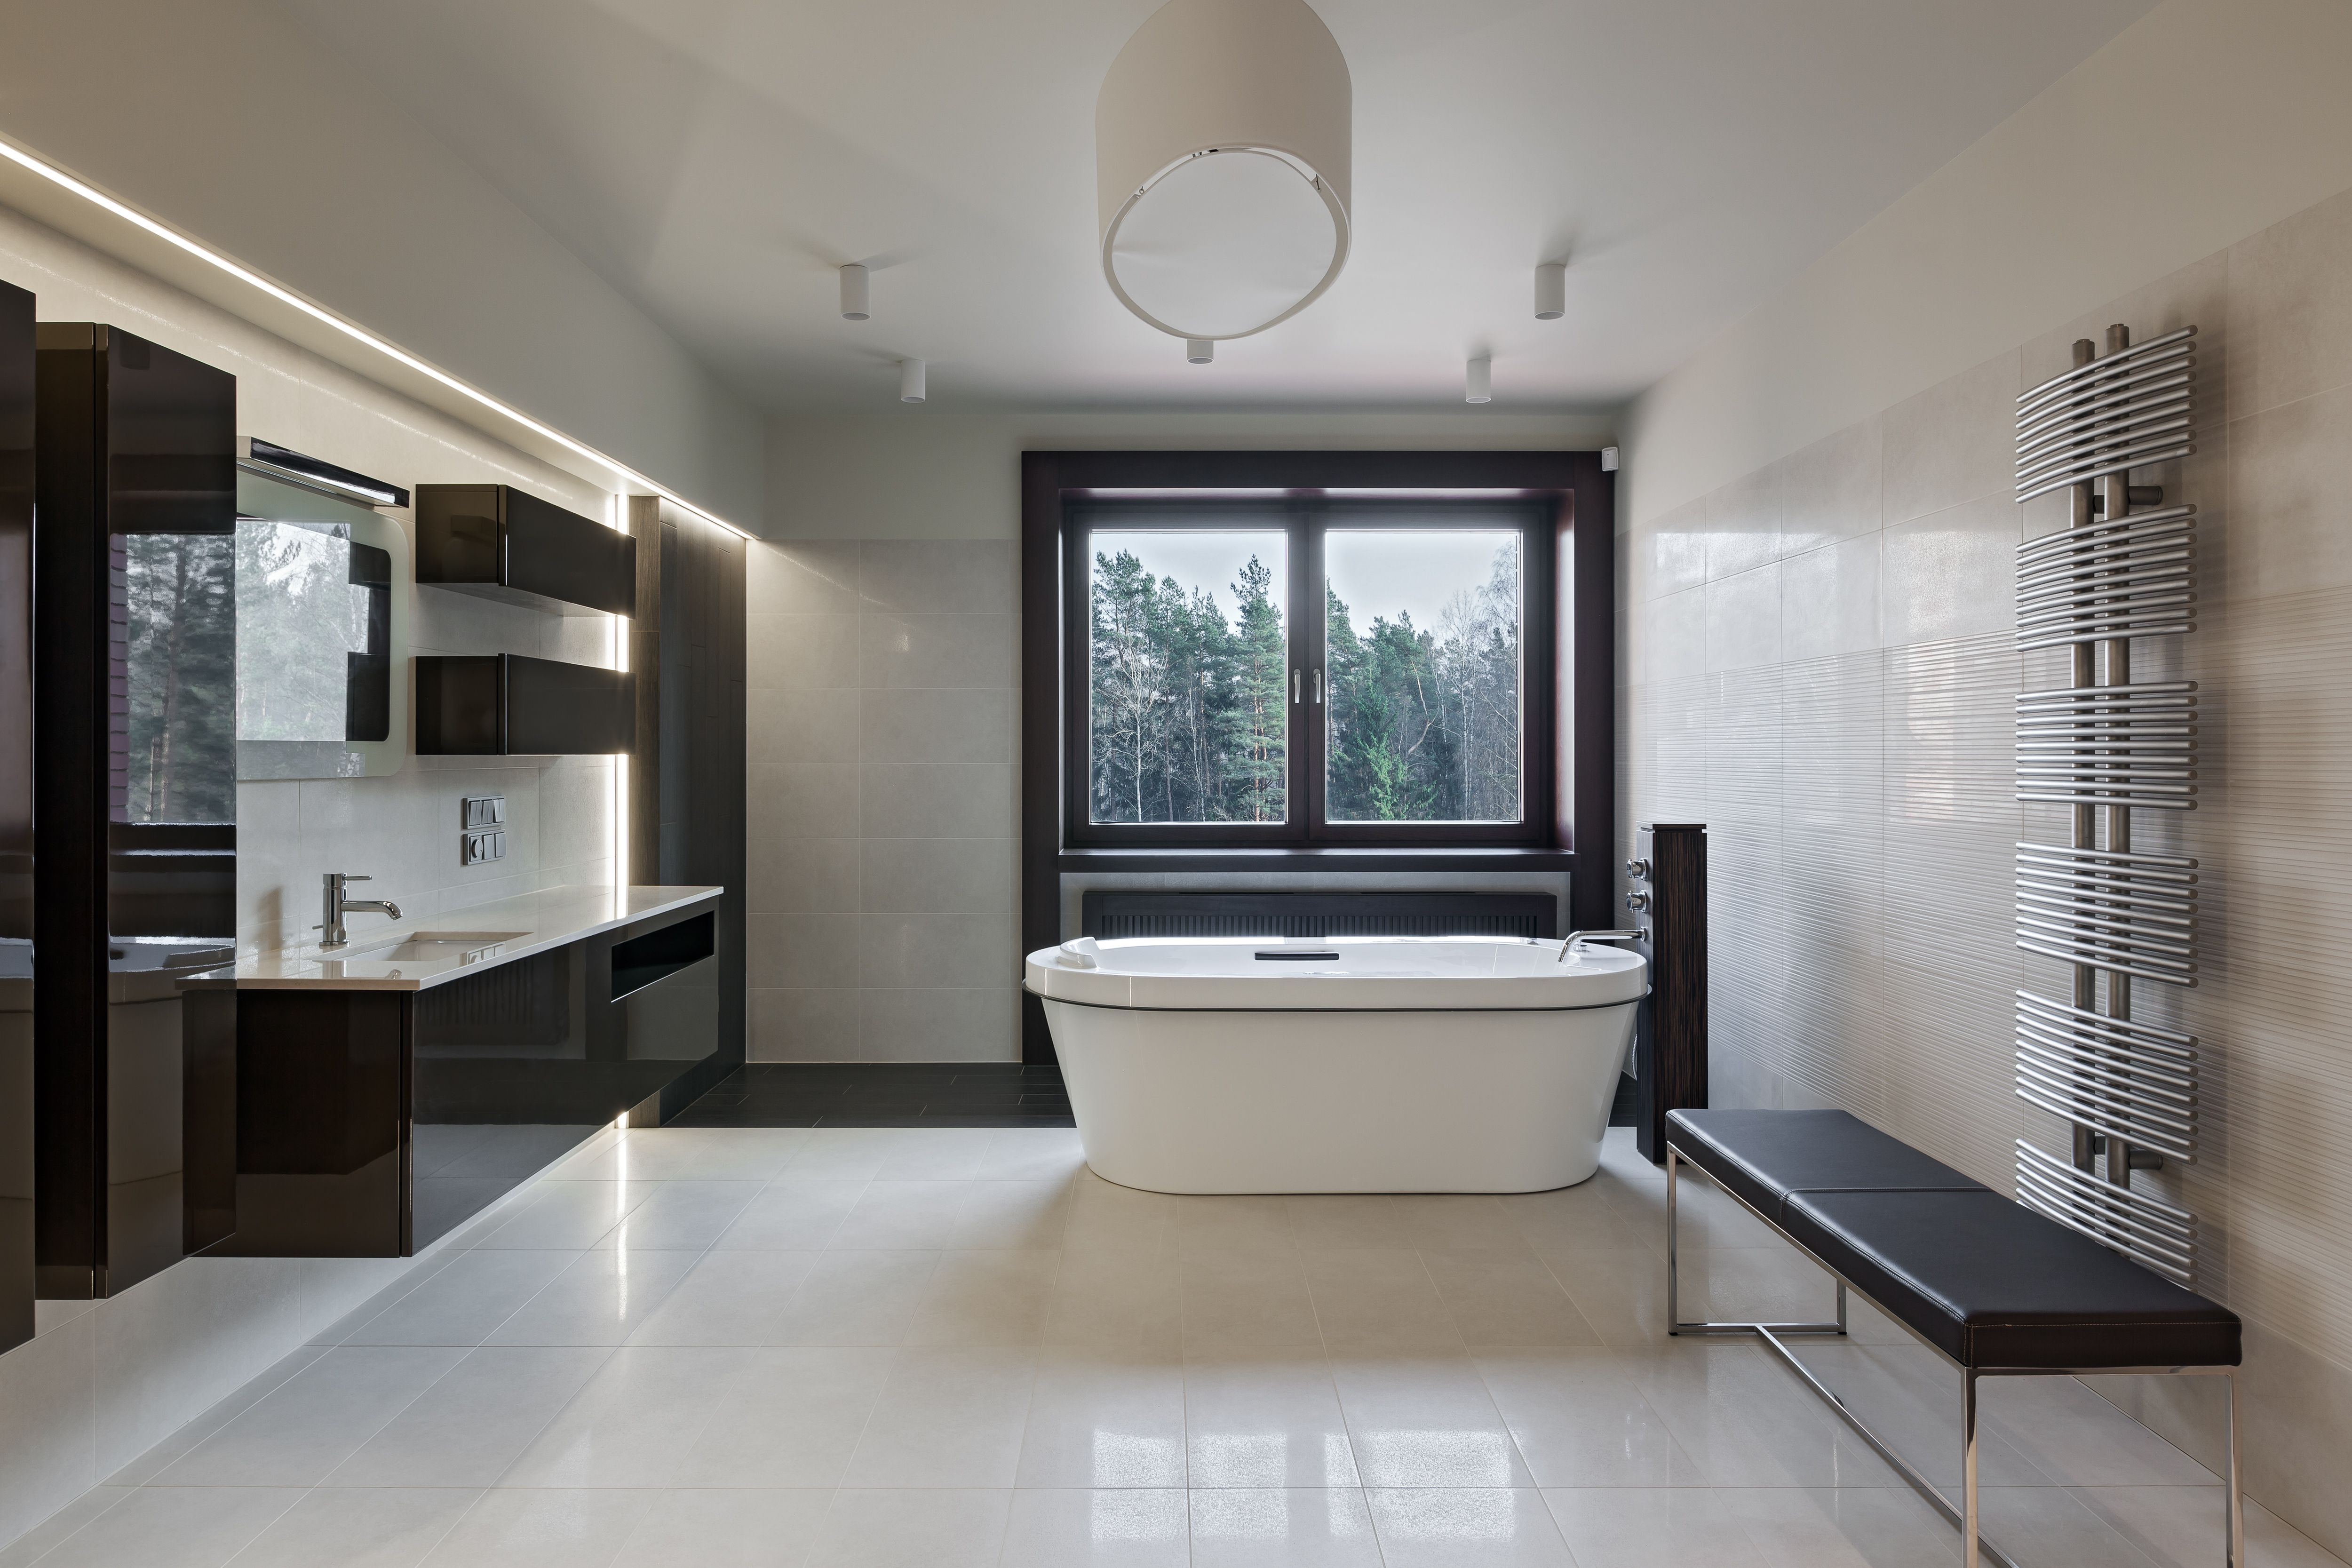 Owings Brothers Contracting Home Remodeling In Maryland Bathrooms Remodel Bathroom Design Small Bathroom Remodel [ 3333 x 5000 Pixel ]